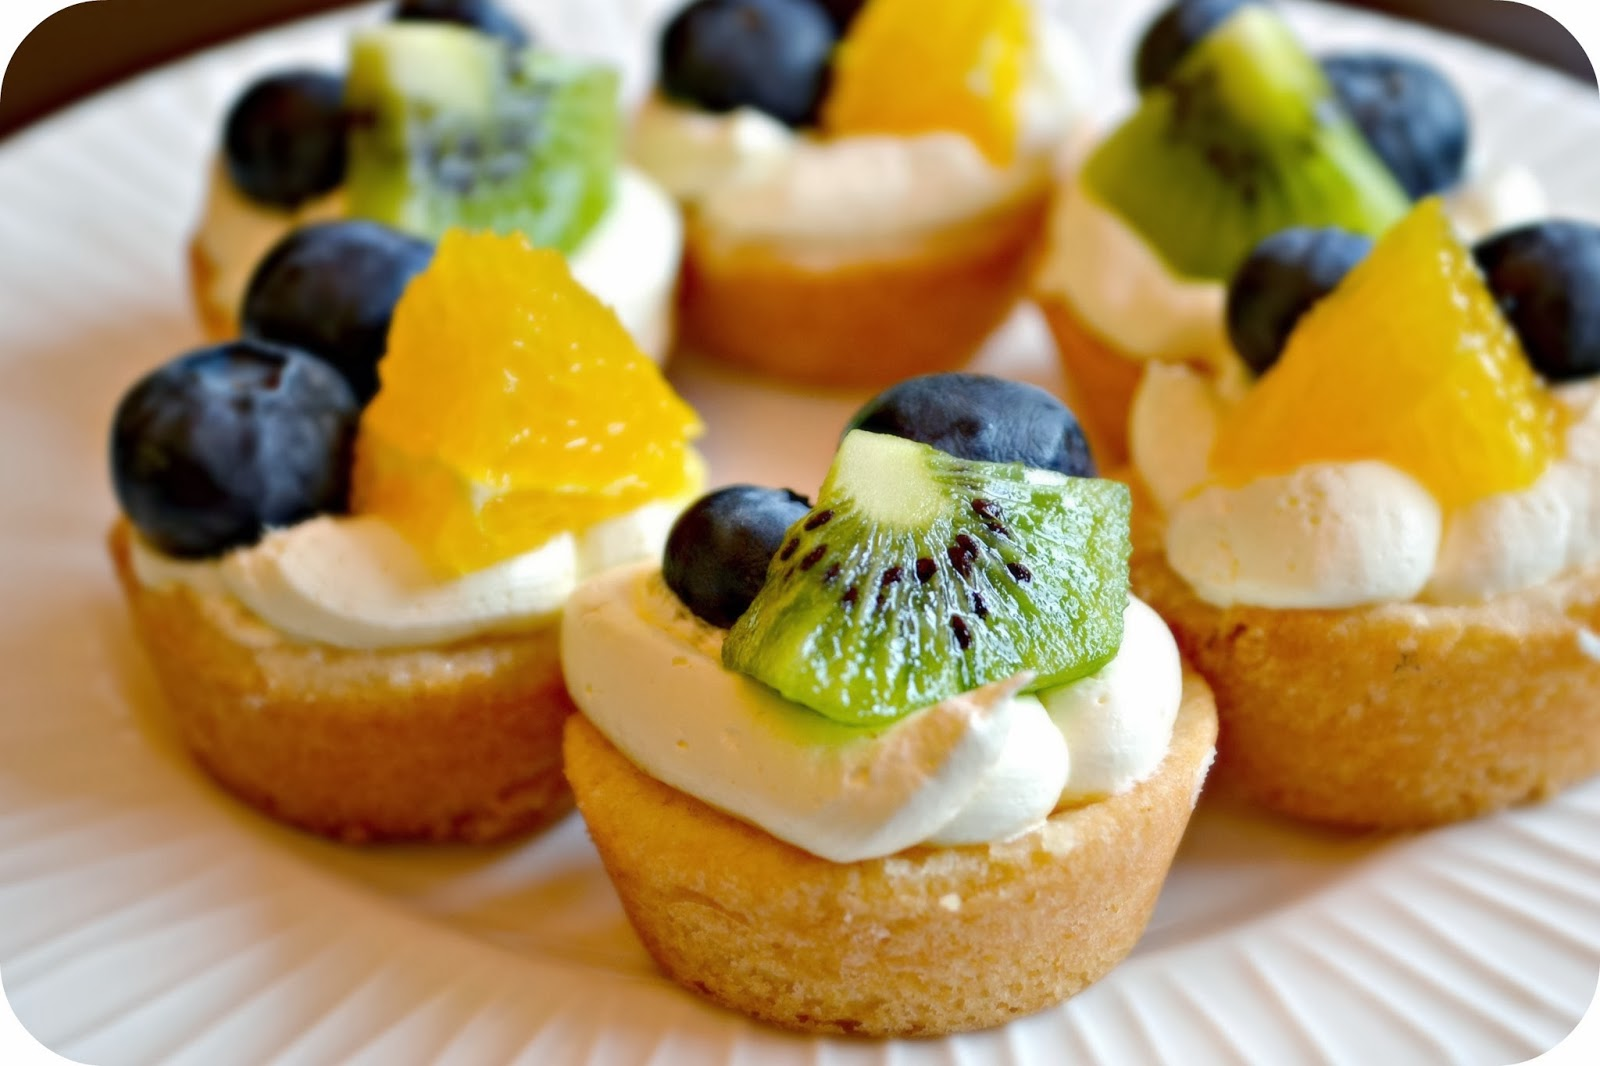 Macke Monologues: Mini Fruit Pizzas